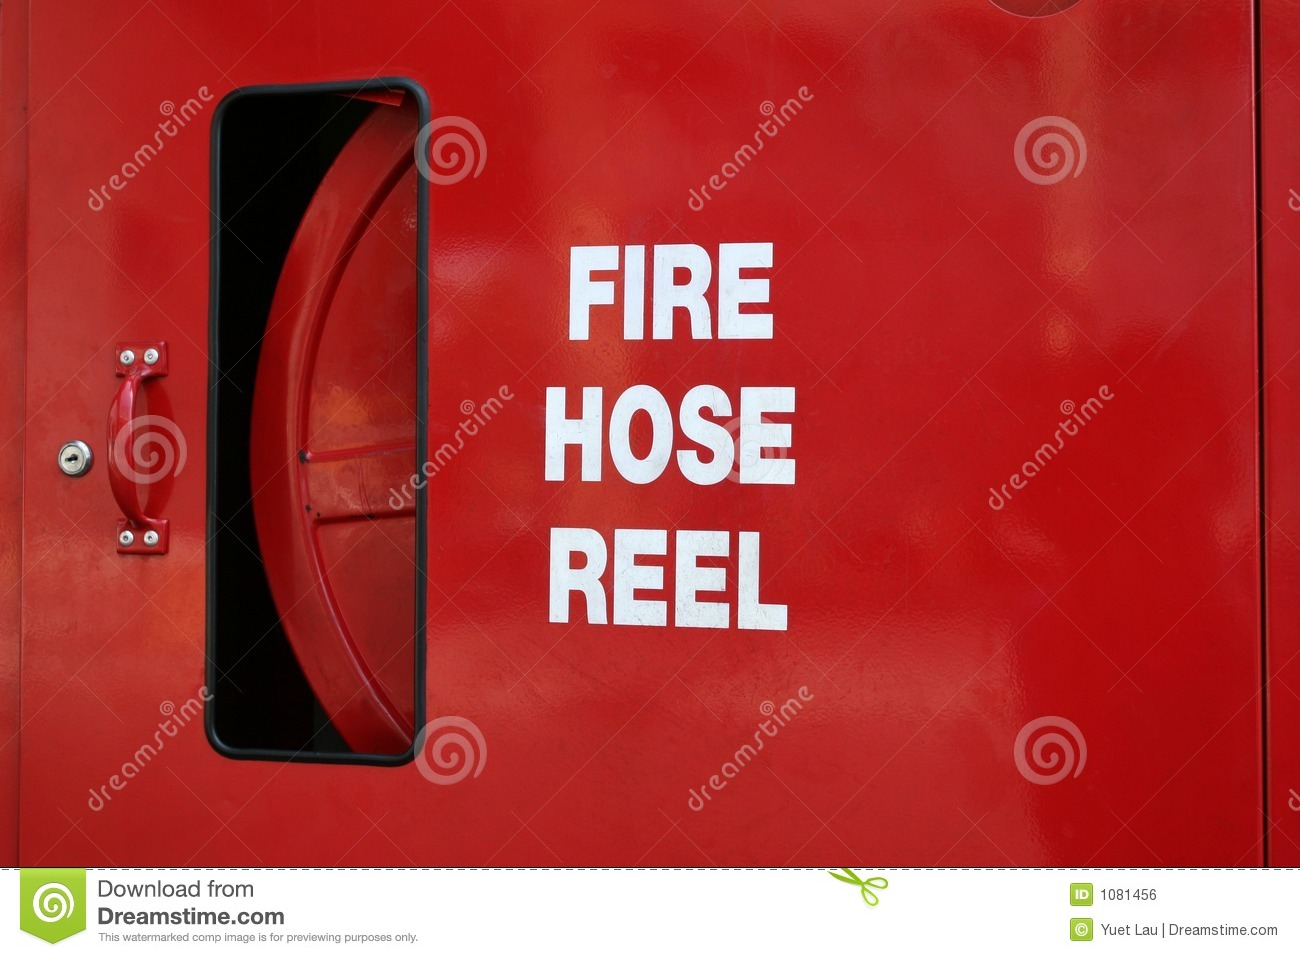 clipart fire hose reel - photo #14